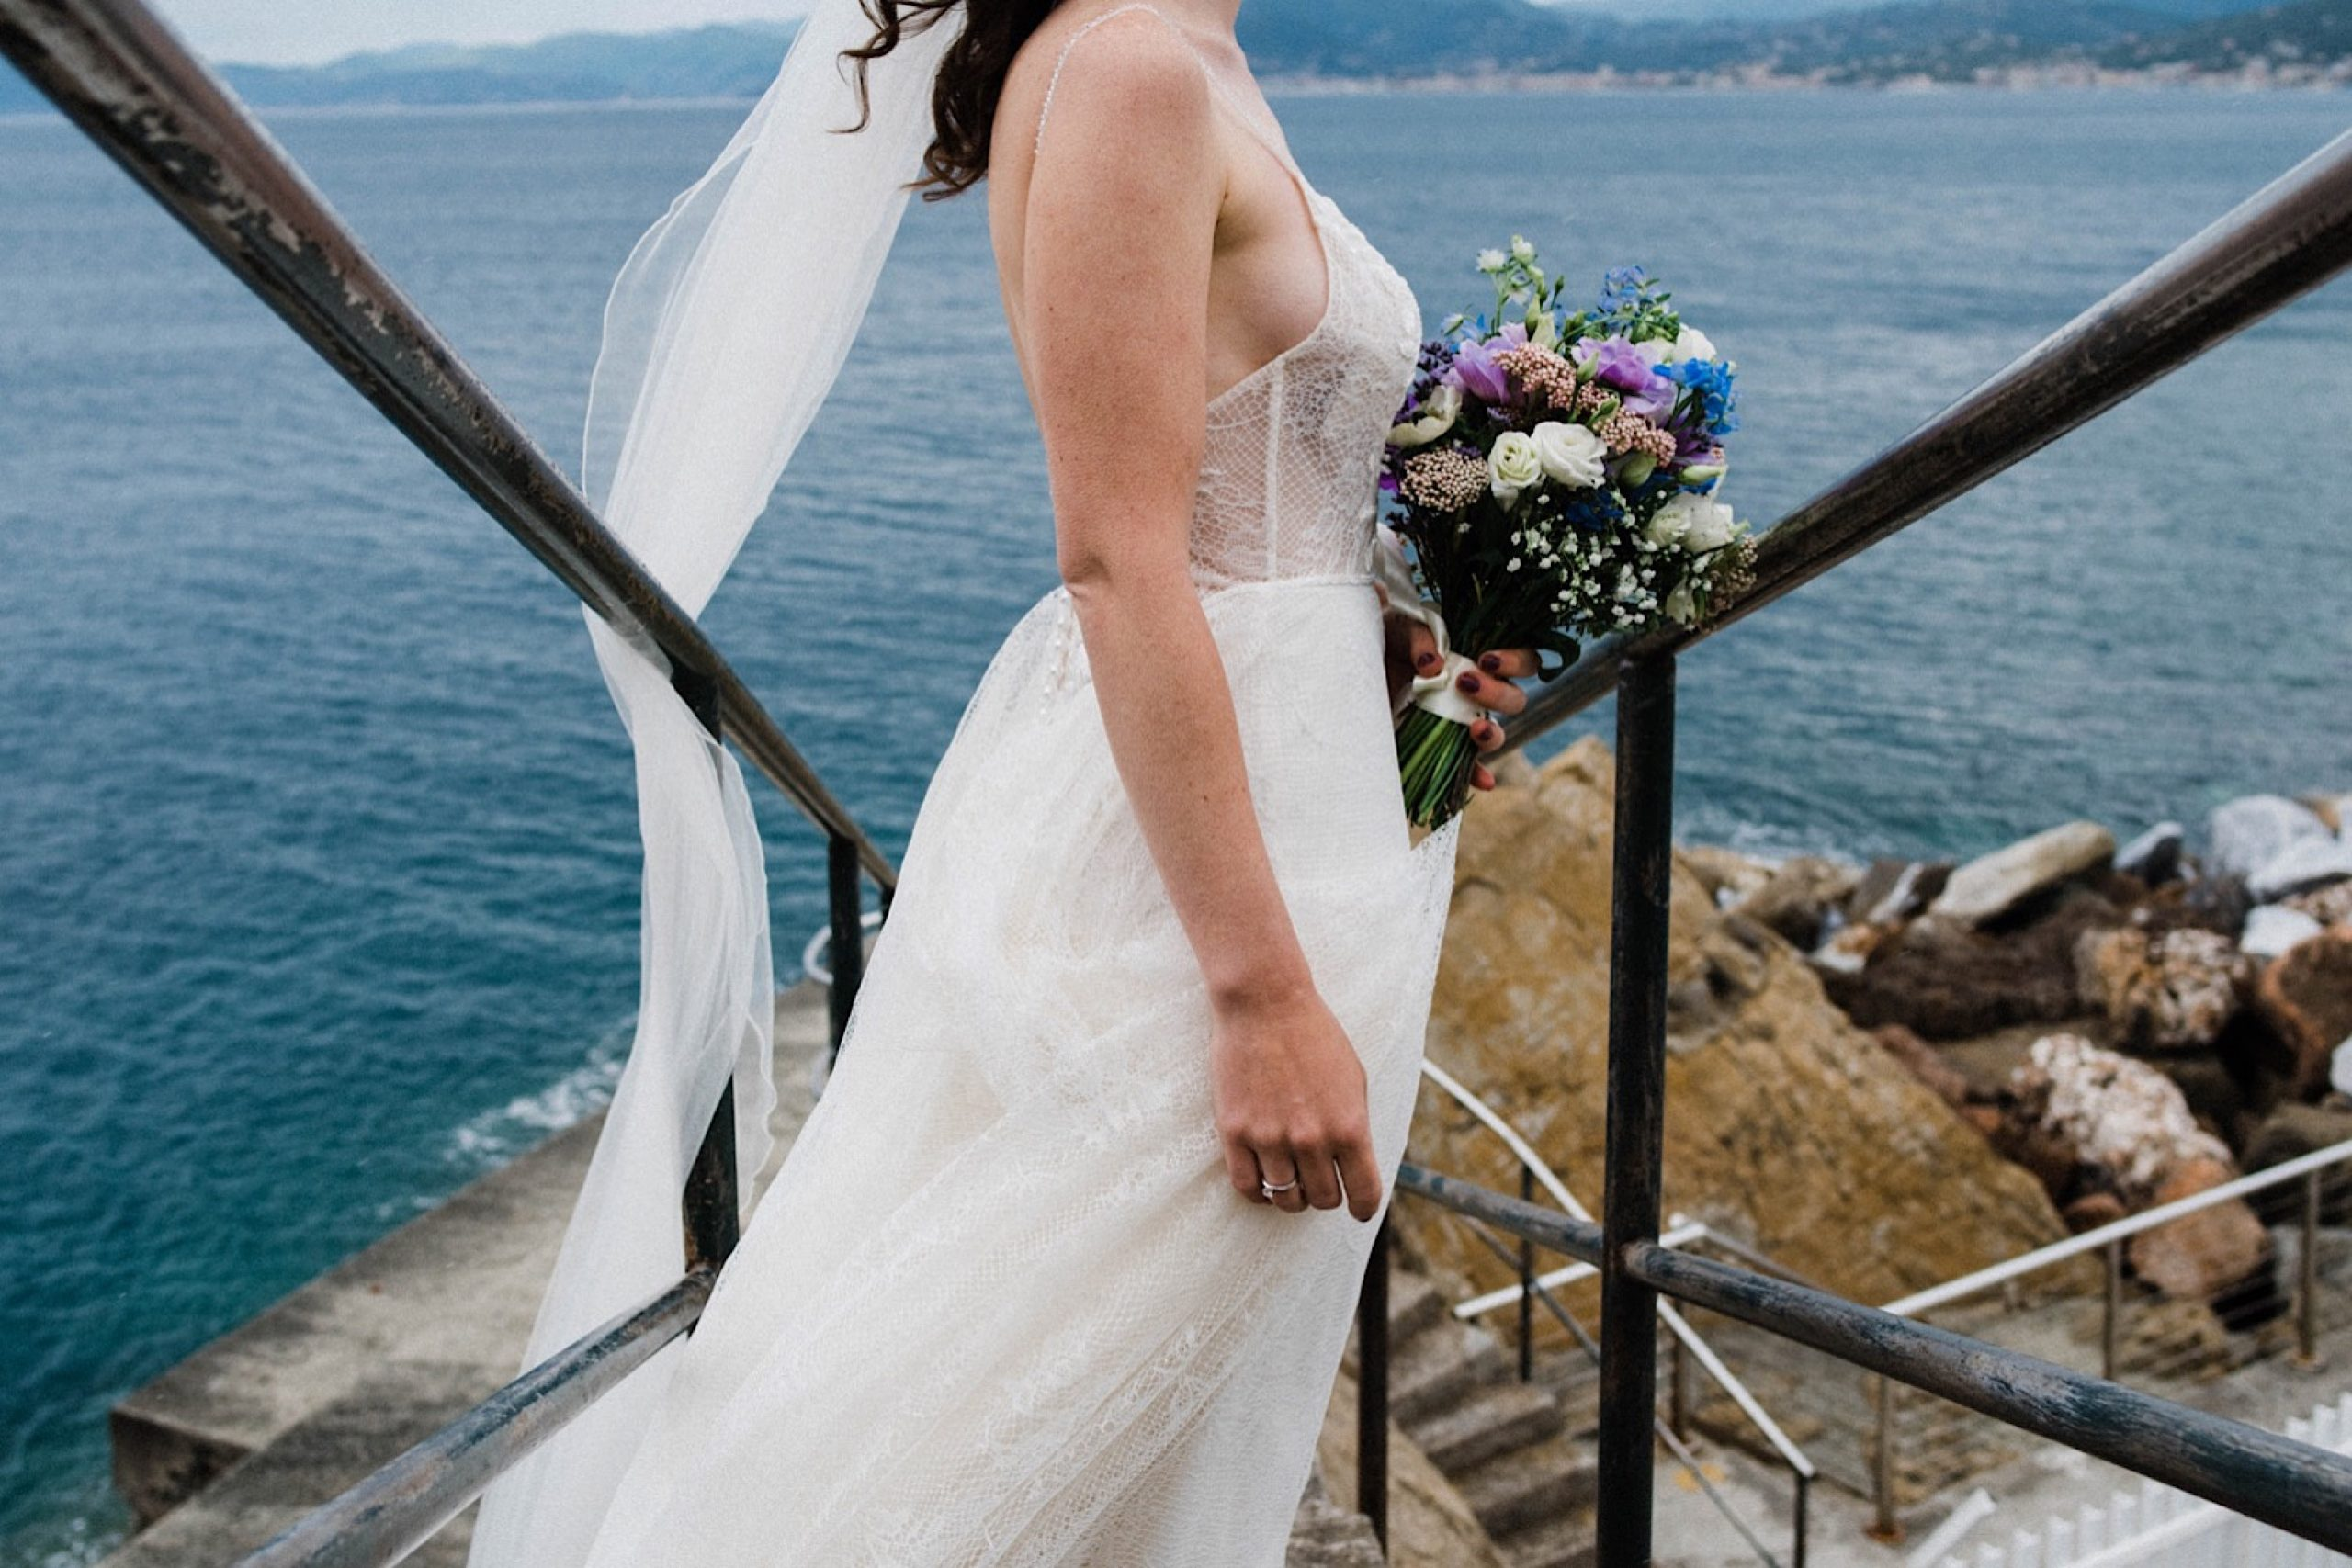 A wedding photo looking down a flight of stairs as the bride's veil flies in the wind.